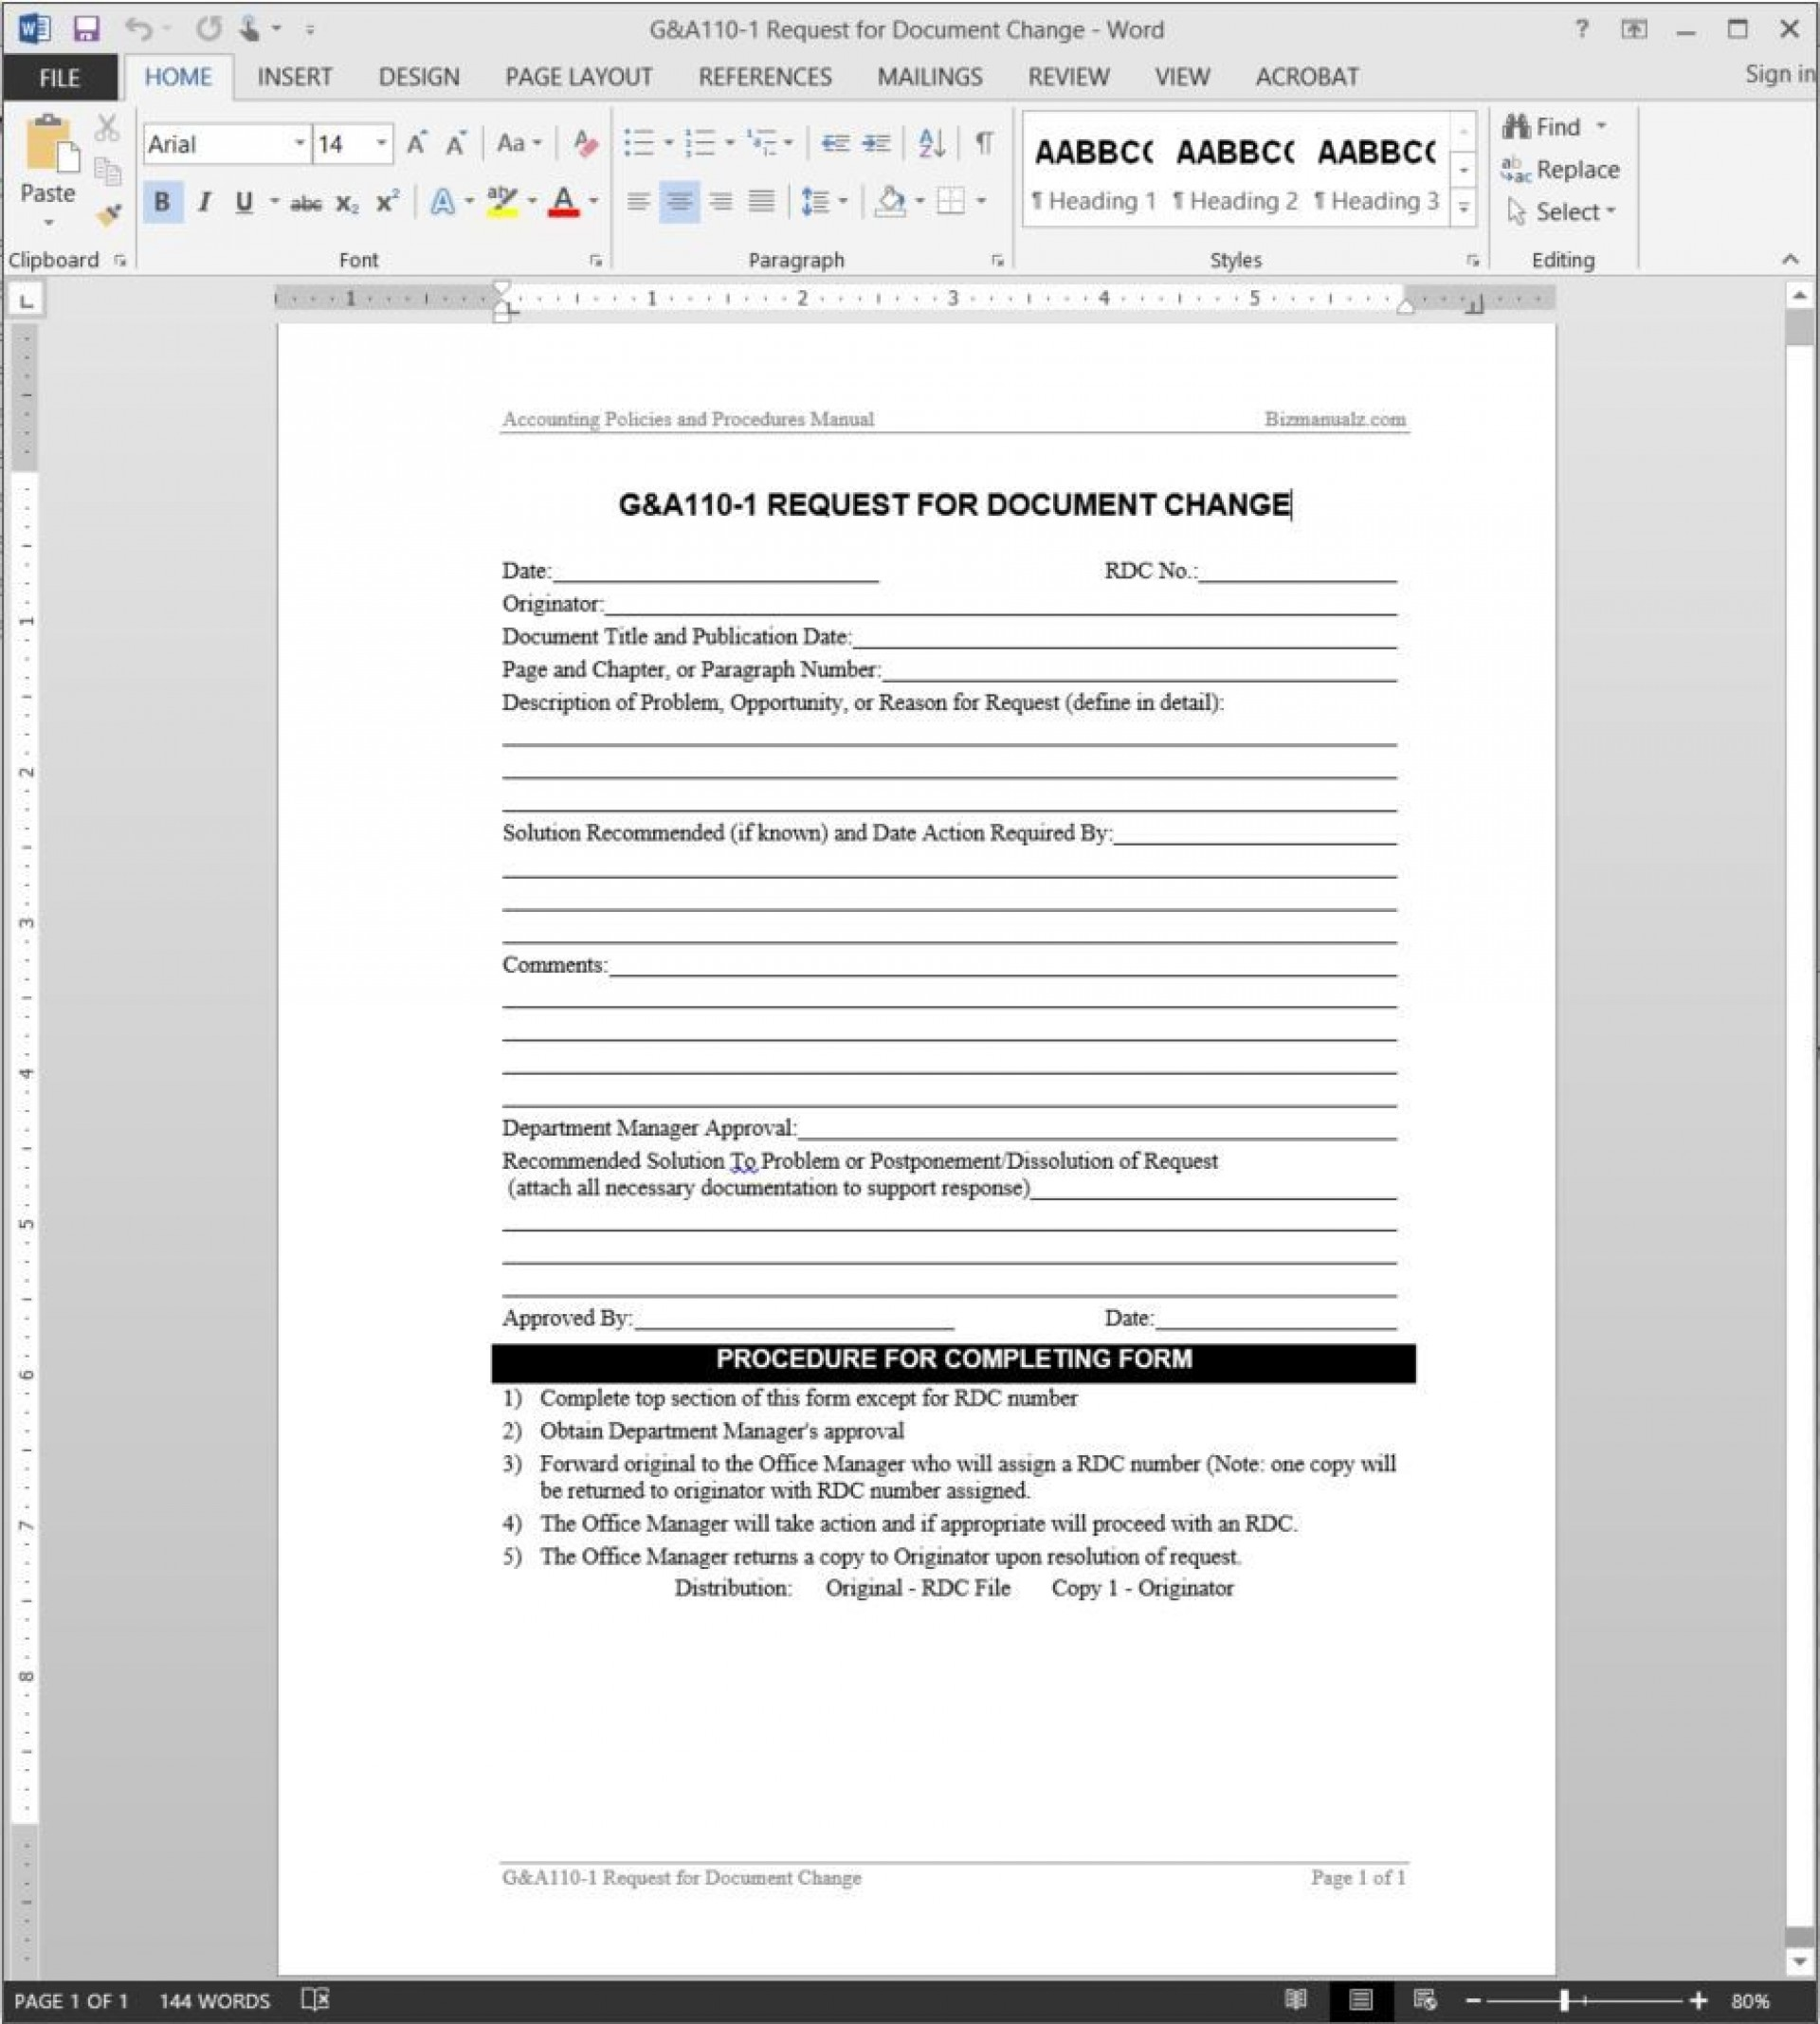 004 Top Management Of Change Procedure Template Highest Quality  Proces Form1920